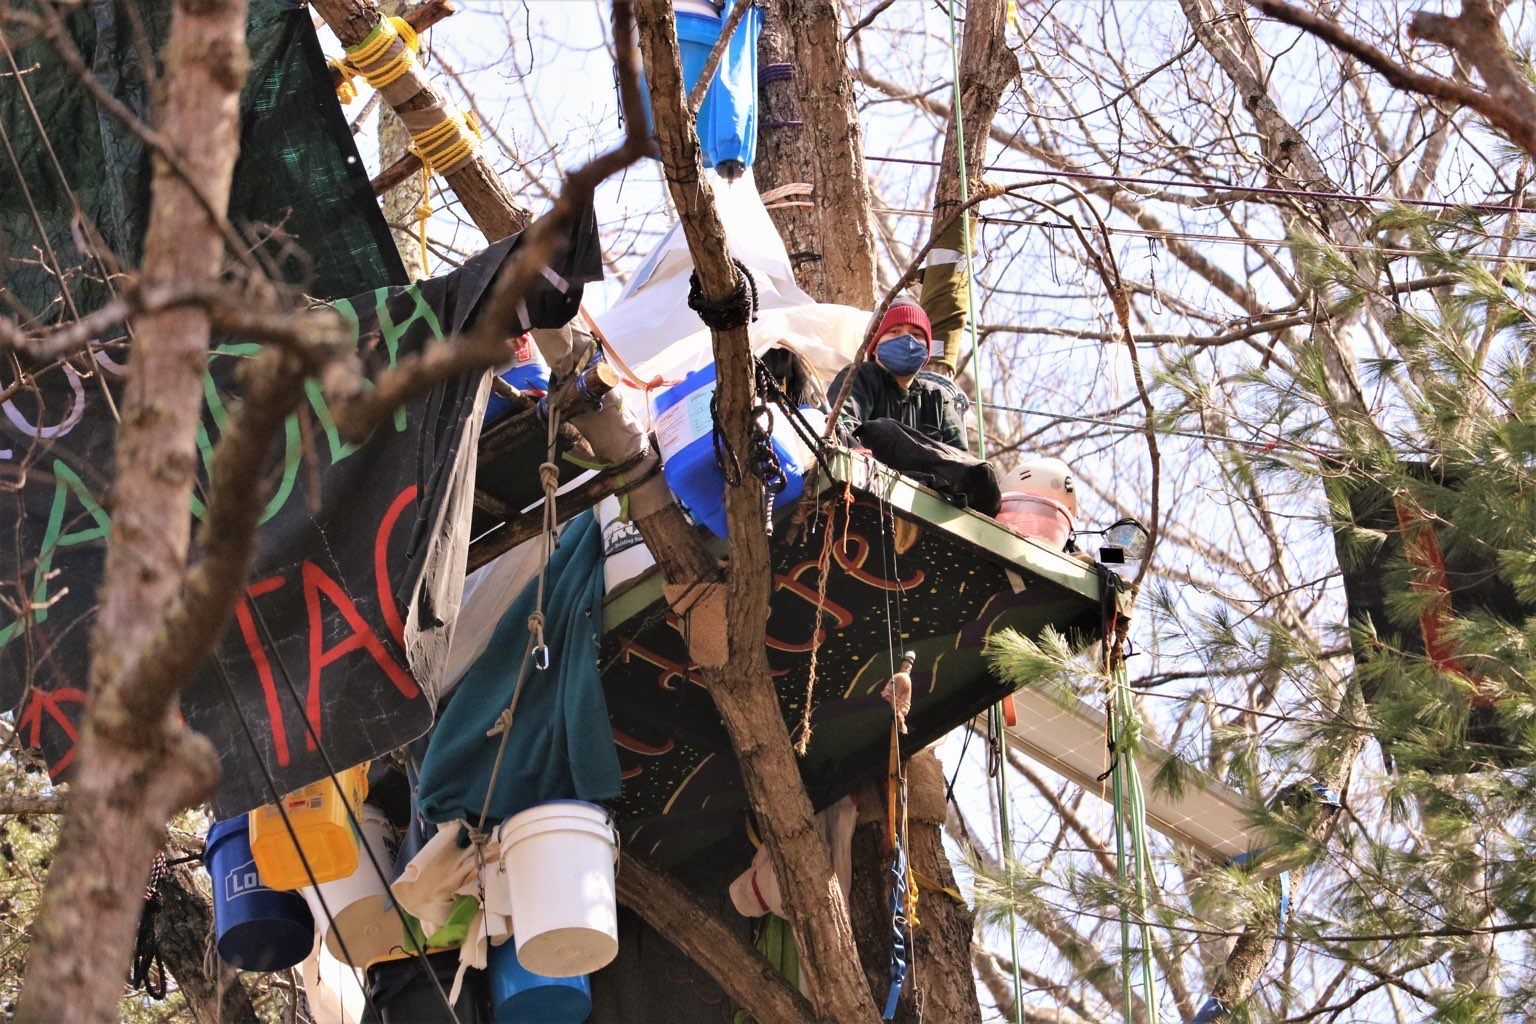 person sits on a platform in a tree that is attached to banners and buckets